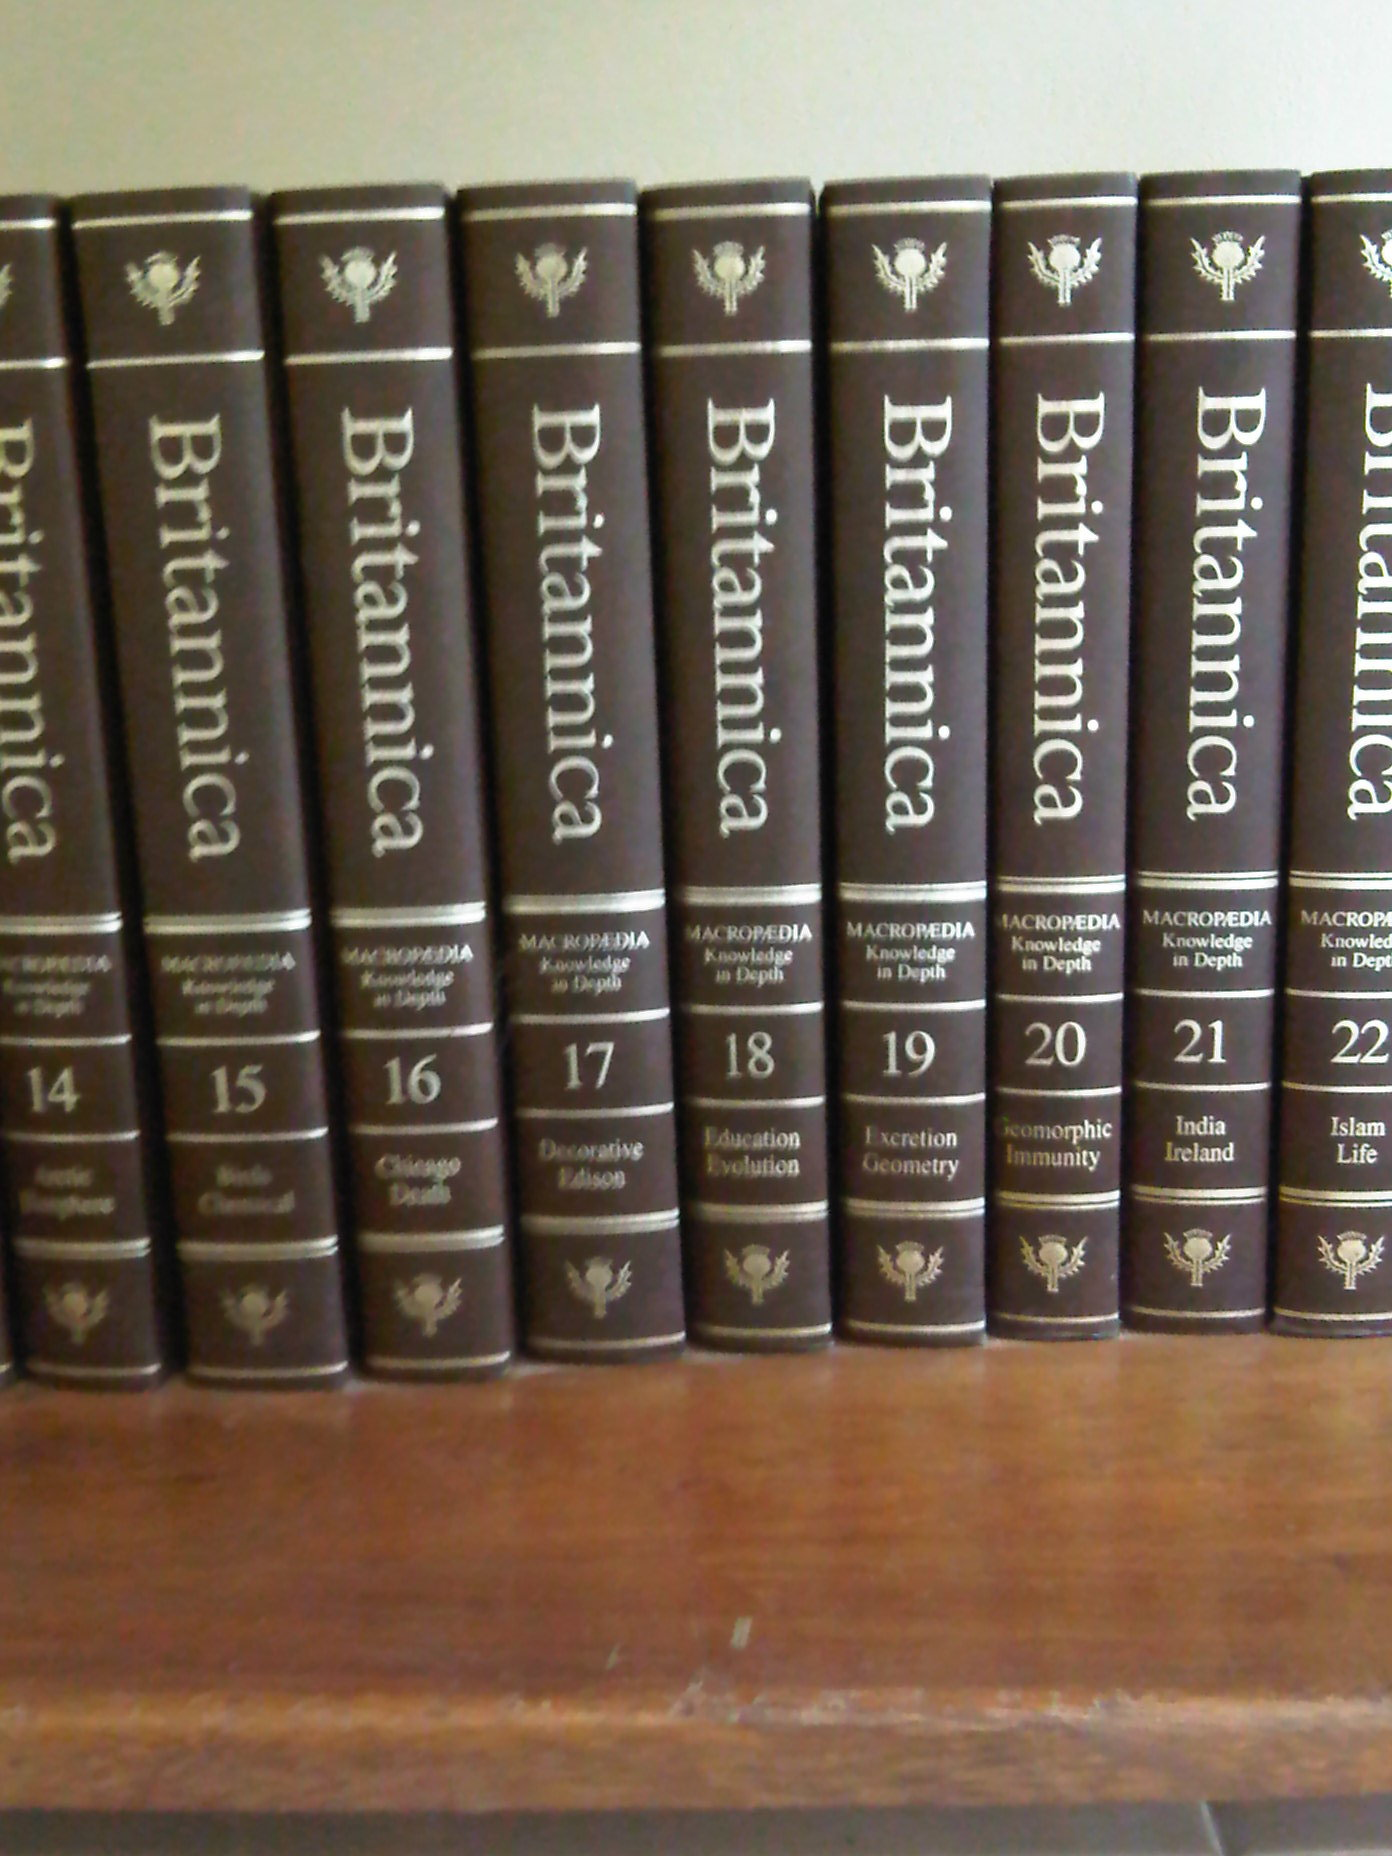 ENCYCLOPEDIA BRITANNICA Book Set | Trinidad Classifieds